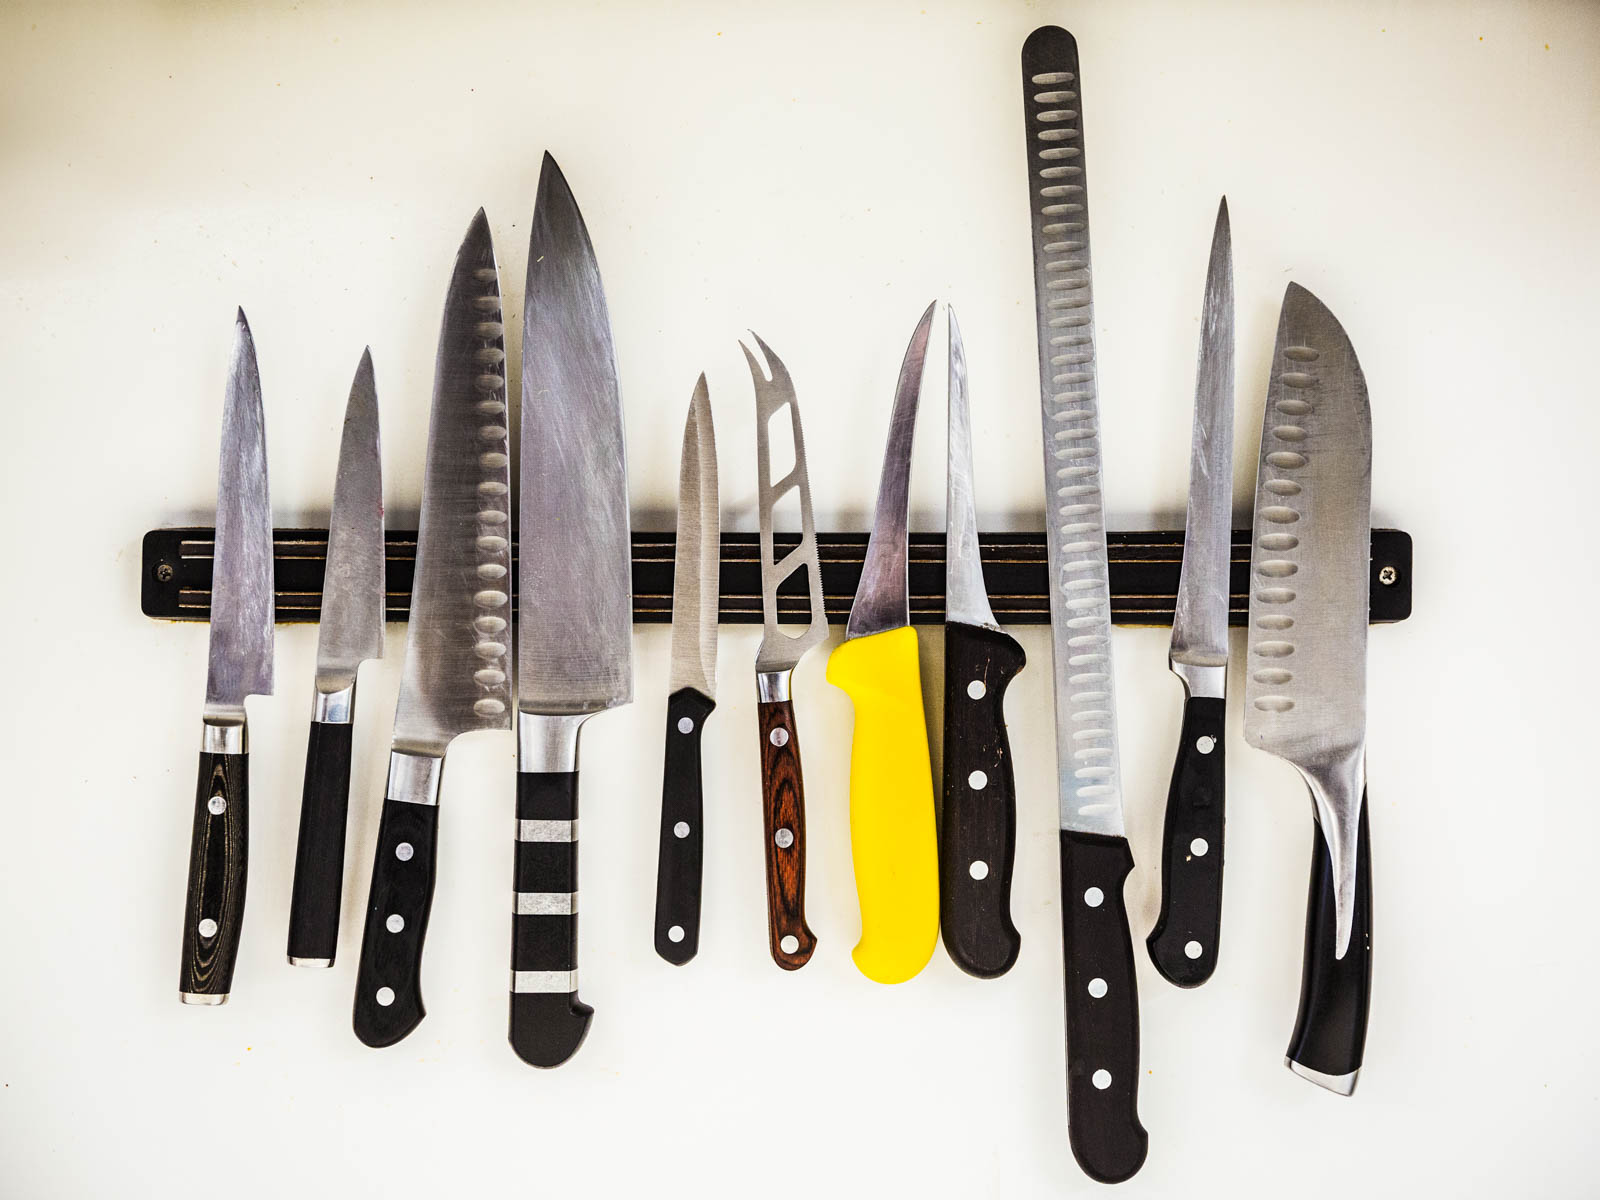 3 Best Knife Sets on Amazon, According to Customer Reviews  Food